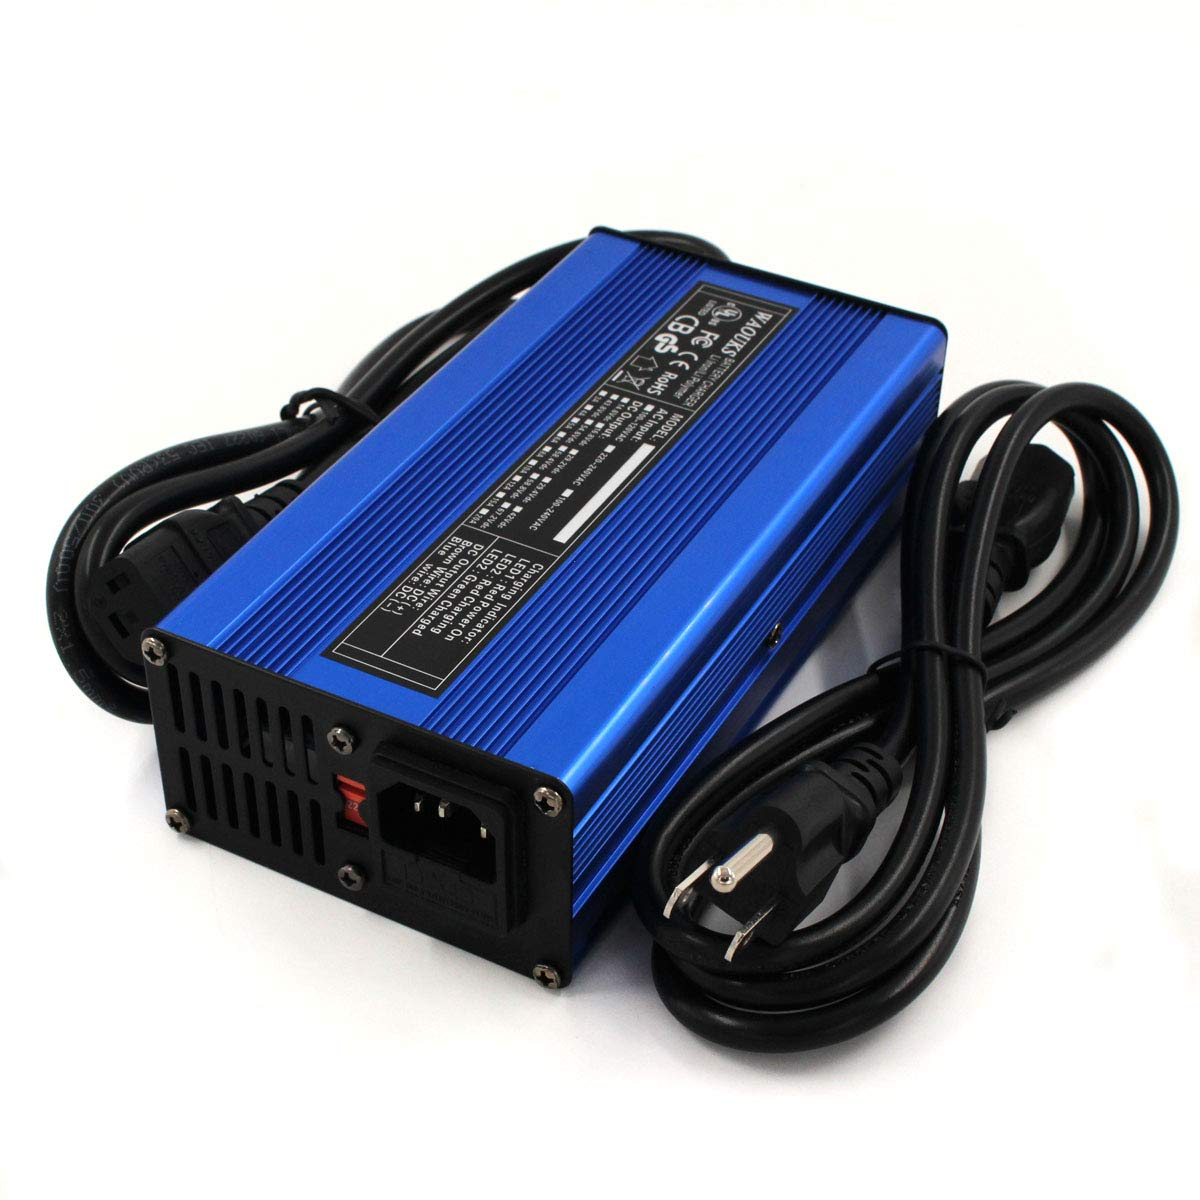 42V 5A Charger 36V Li-ion Battery Charger 10S 36V Lipo/LiMn2O4/LiCoO2 Battery Pack Quick Charge Fully Automatic DONGGUAN WATE ELECTRONICS CO. LTD WA-4205